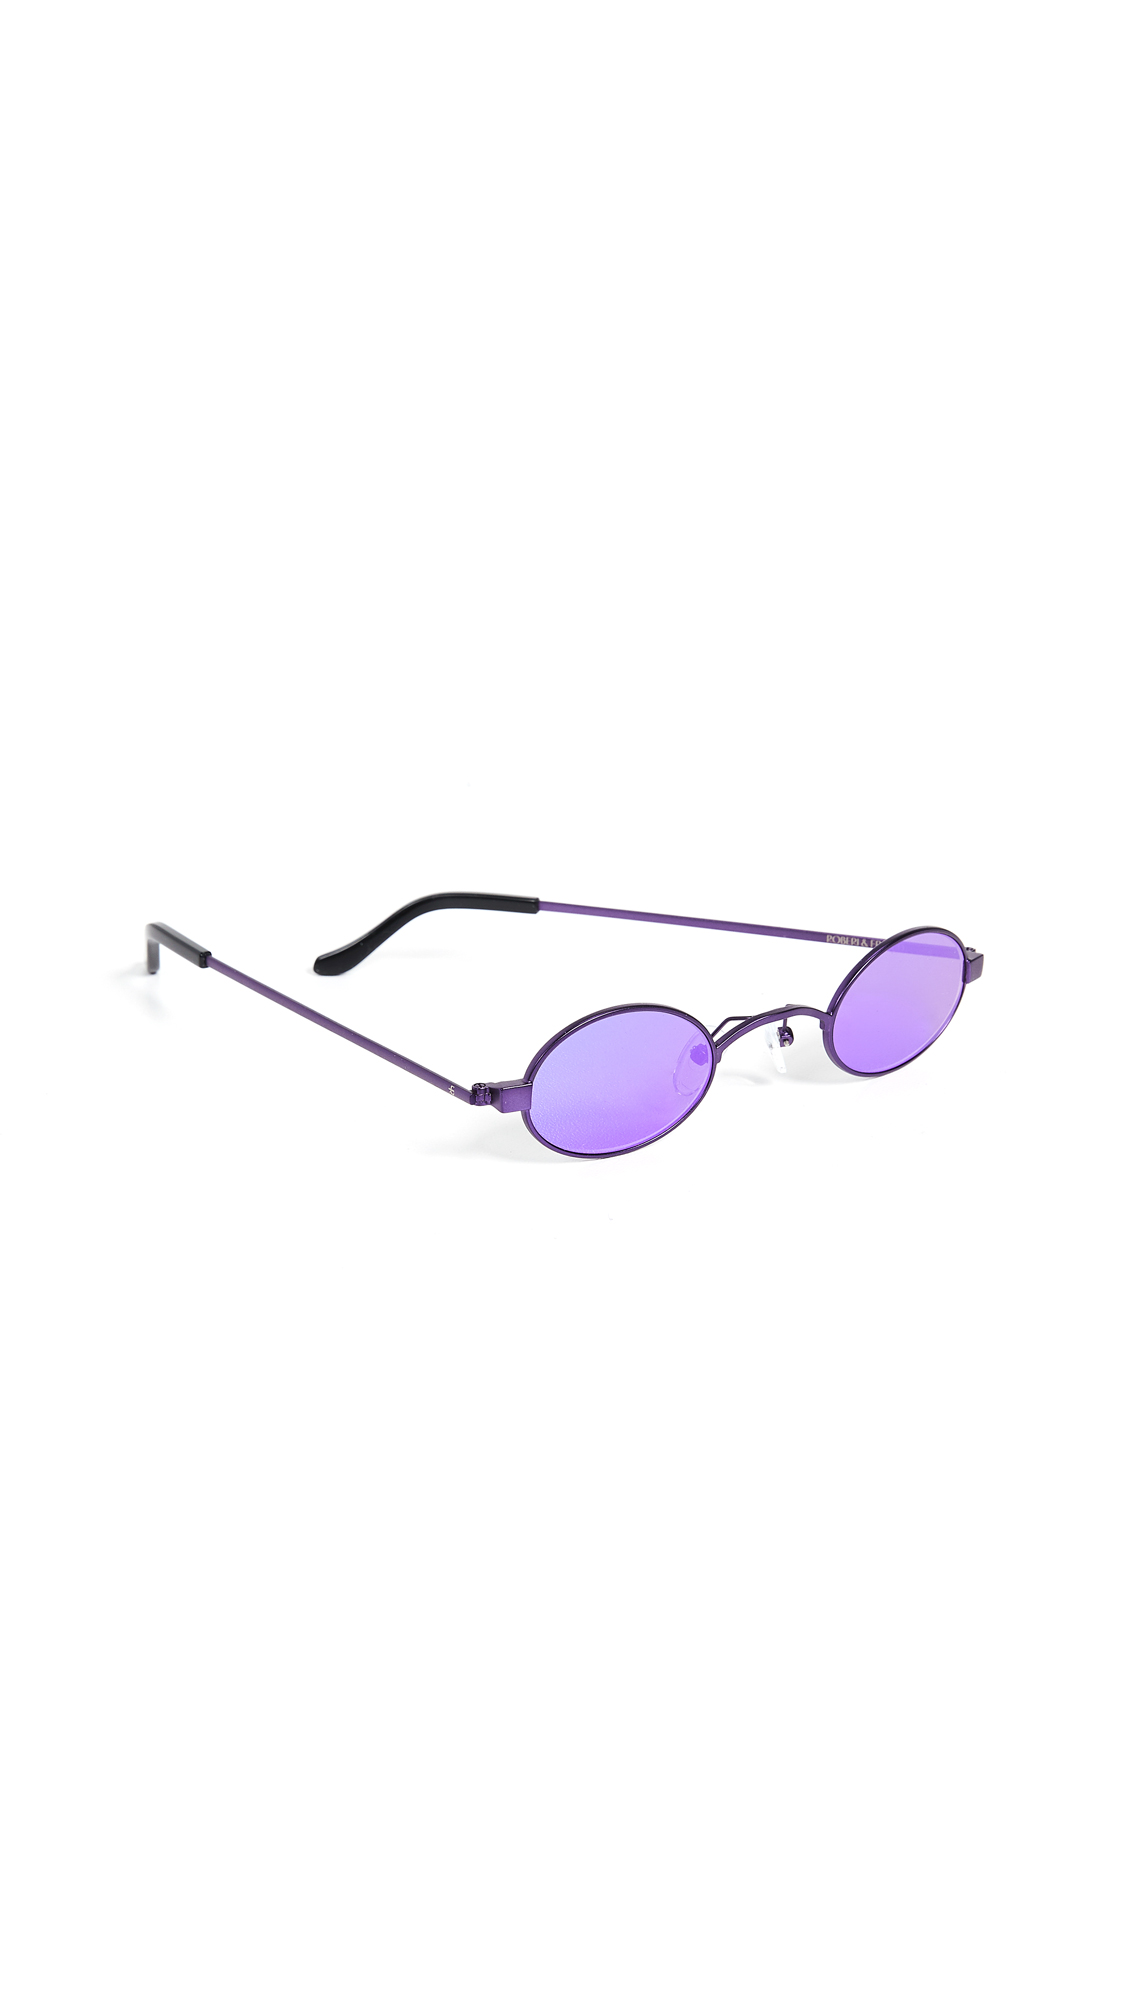 ROBERI & FRAUD Doris Sunglasses in Purple